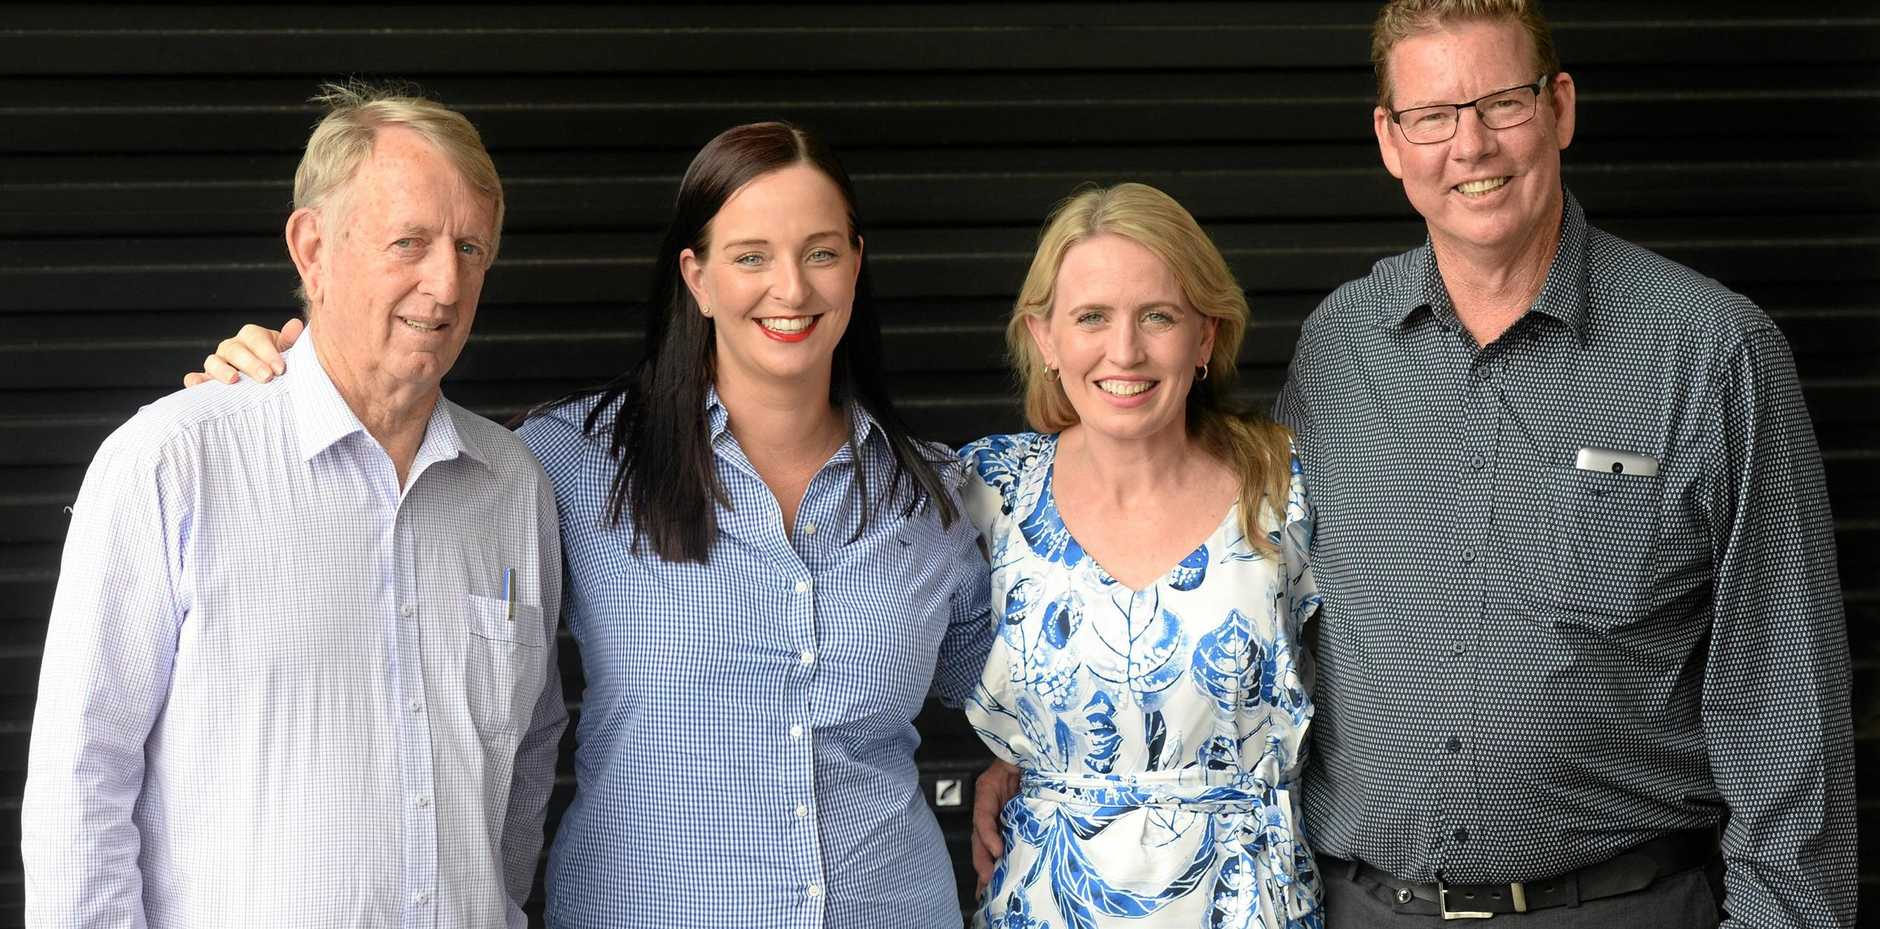 CQ LABOR LAUNCH: Mirani MP Jim Pearce, Keppel MP Brittany Lauga, Education Minister Kate Jones and Rockhampton candidate Barry O'Rourke are all smiles ahead of the Queensland election on November 25. They joined in the fun at the Red Lion Hotel yesterday for the CQ launch.